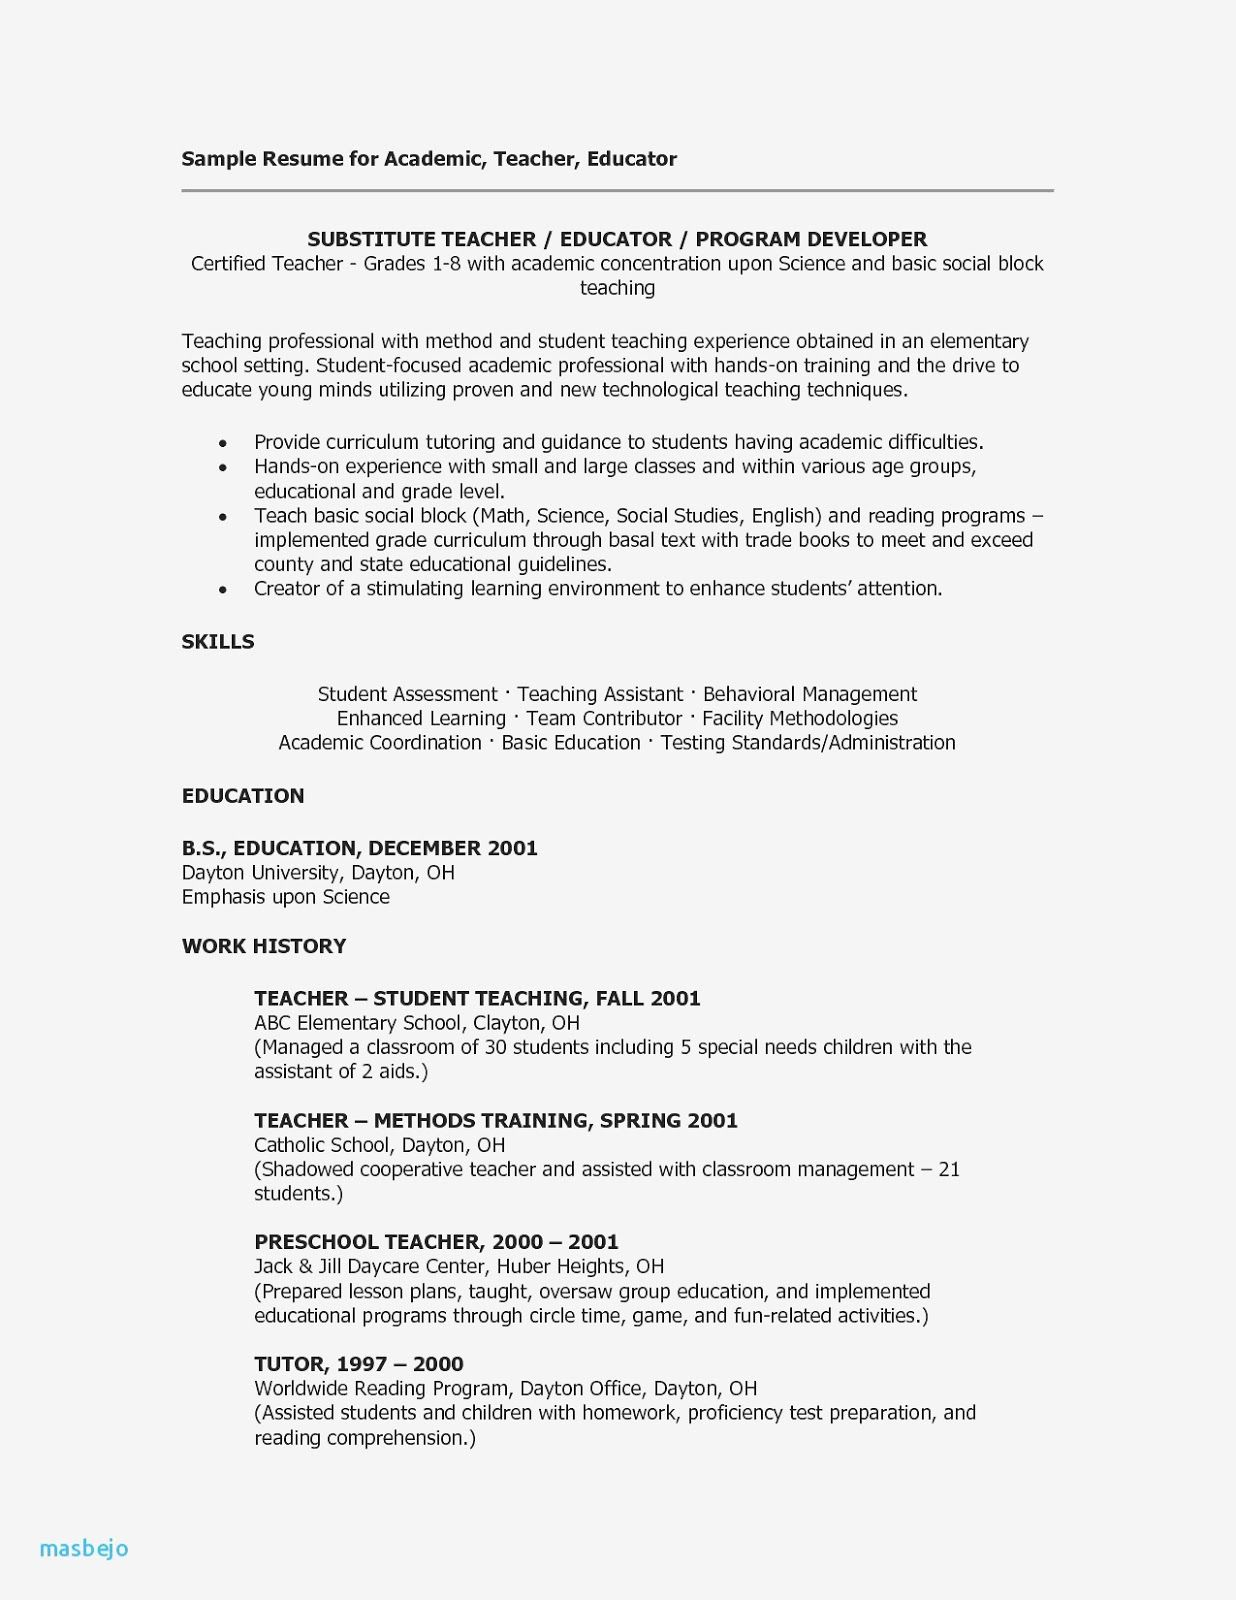 Teacher Assistant Resume Sample Teacher Assistant Resume Sample With No Experie Special Education Worksheets Education Kindergarten Special Education Students